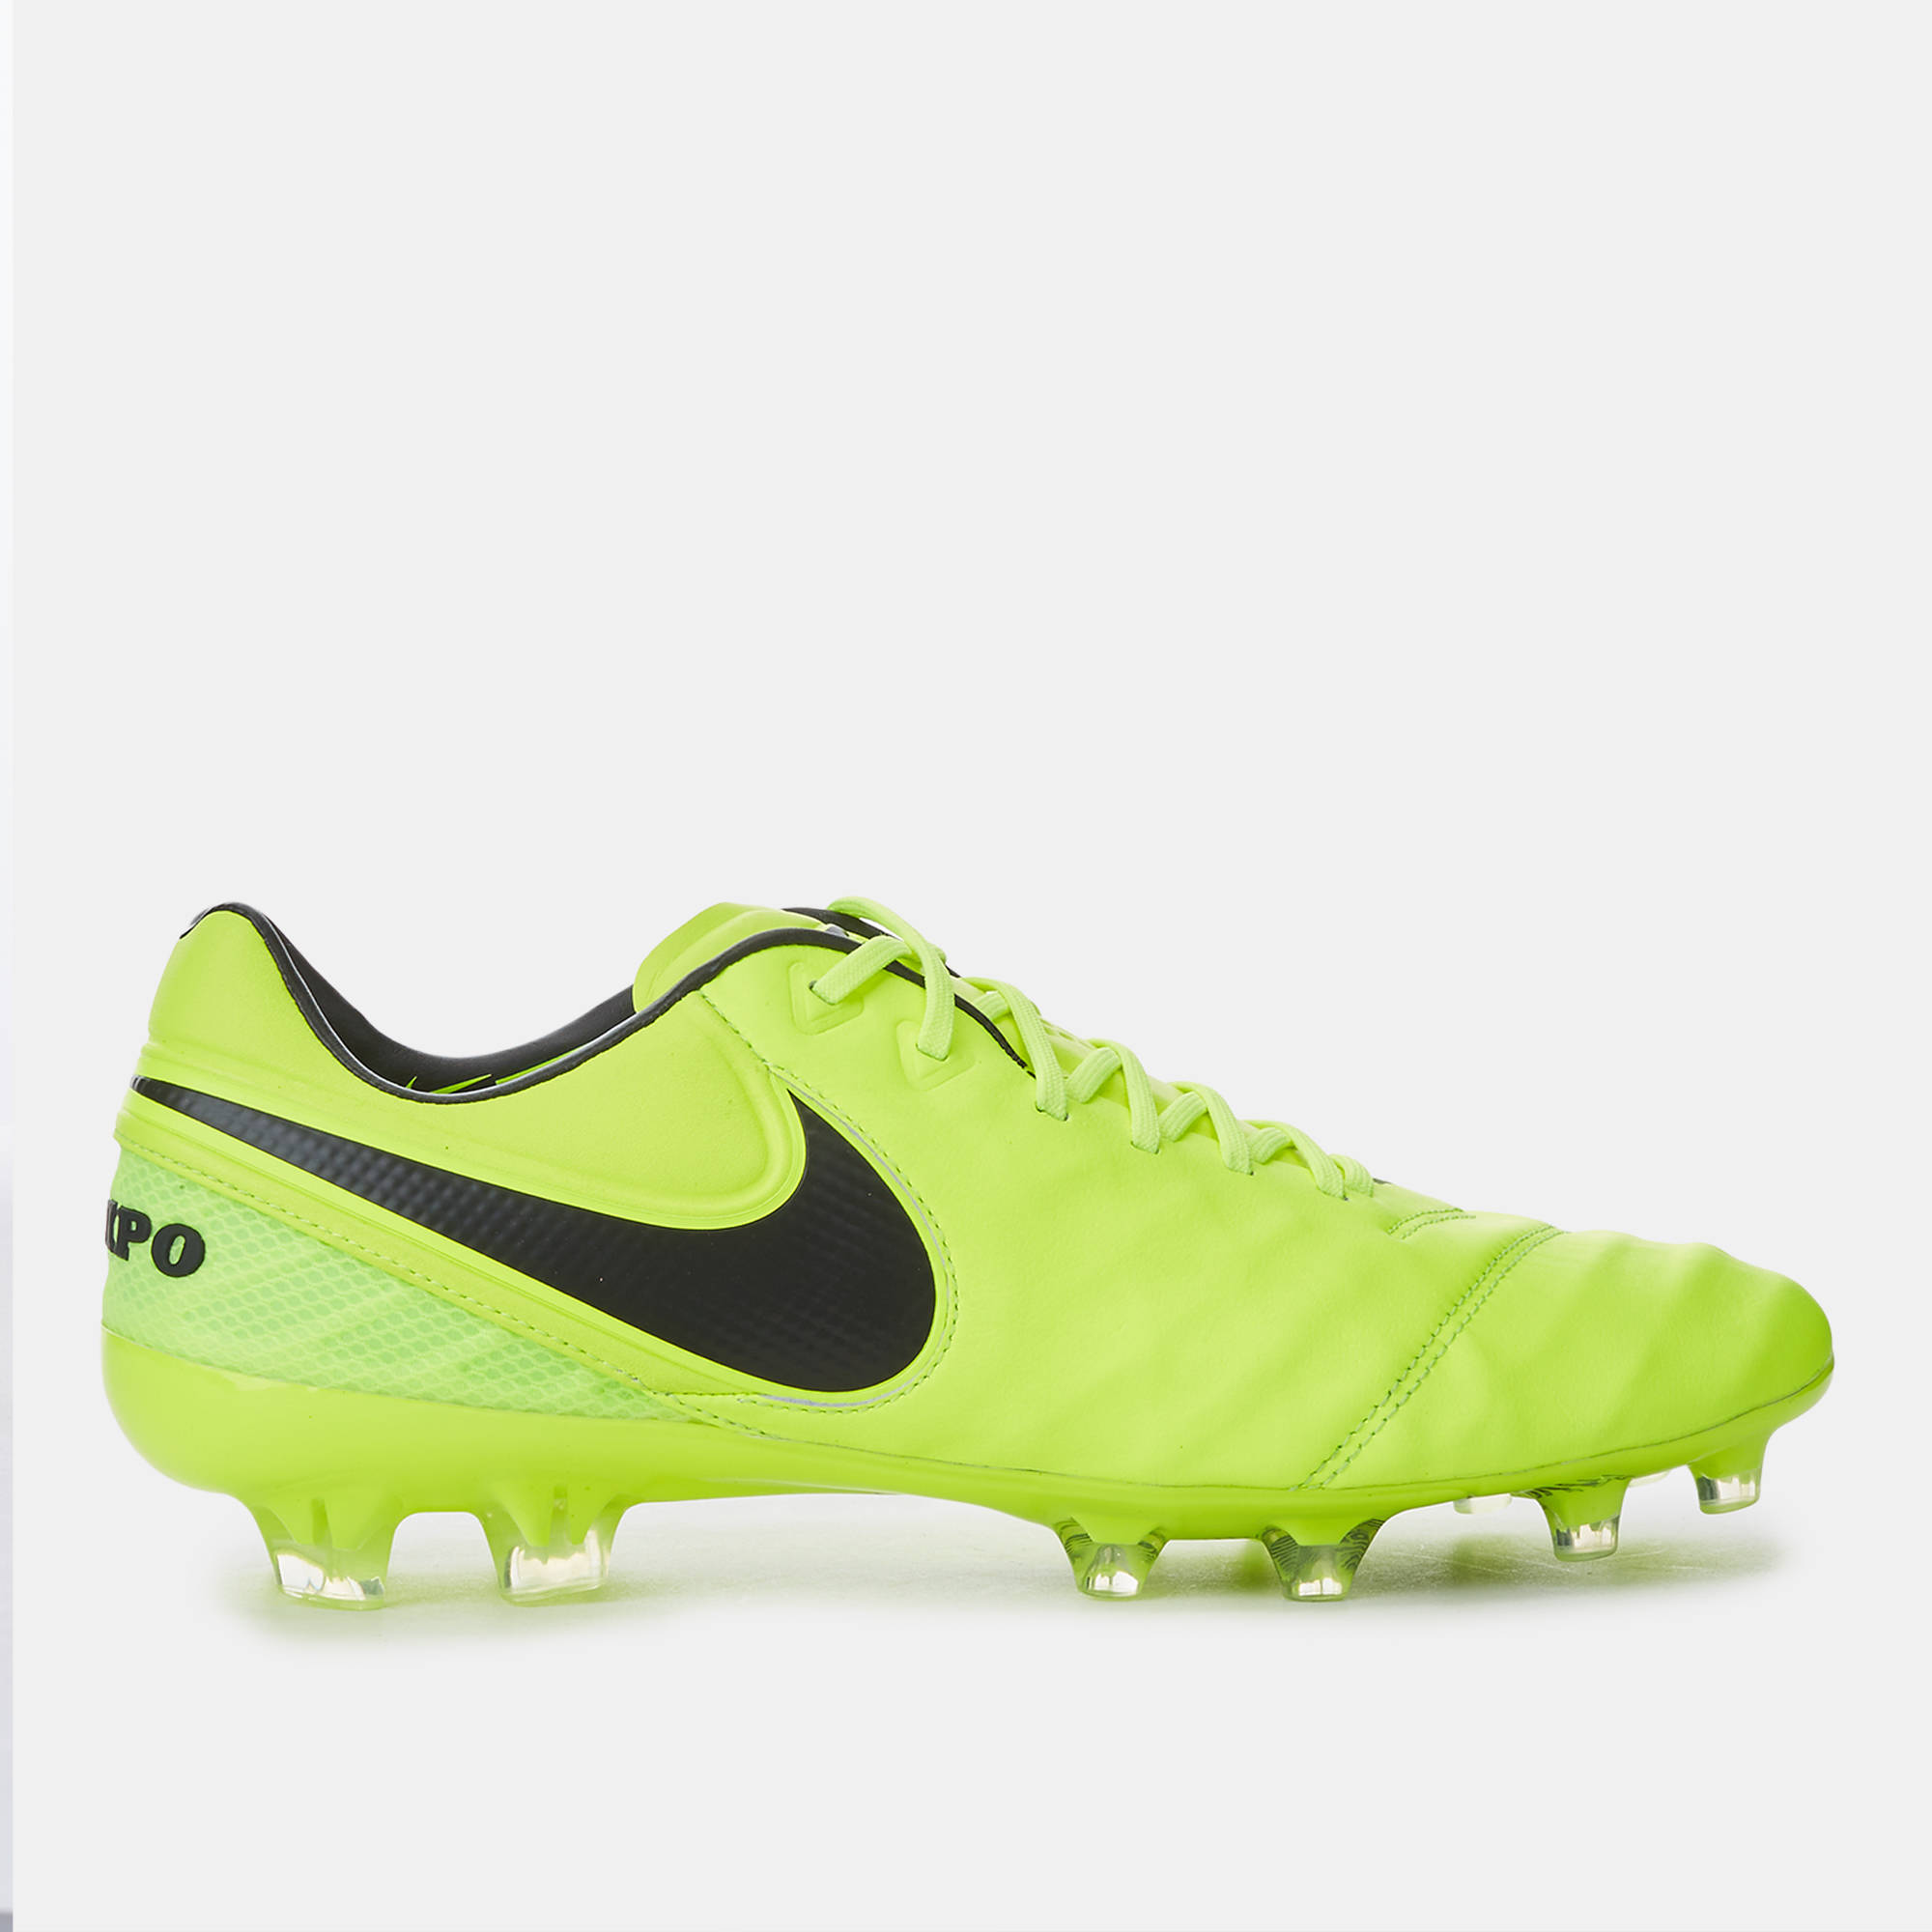 super popular 8130d b46b8 Nike Tiempo Football Boots : Nike × Men and Women's shoes ...